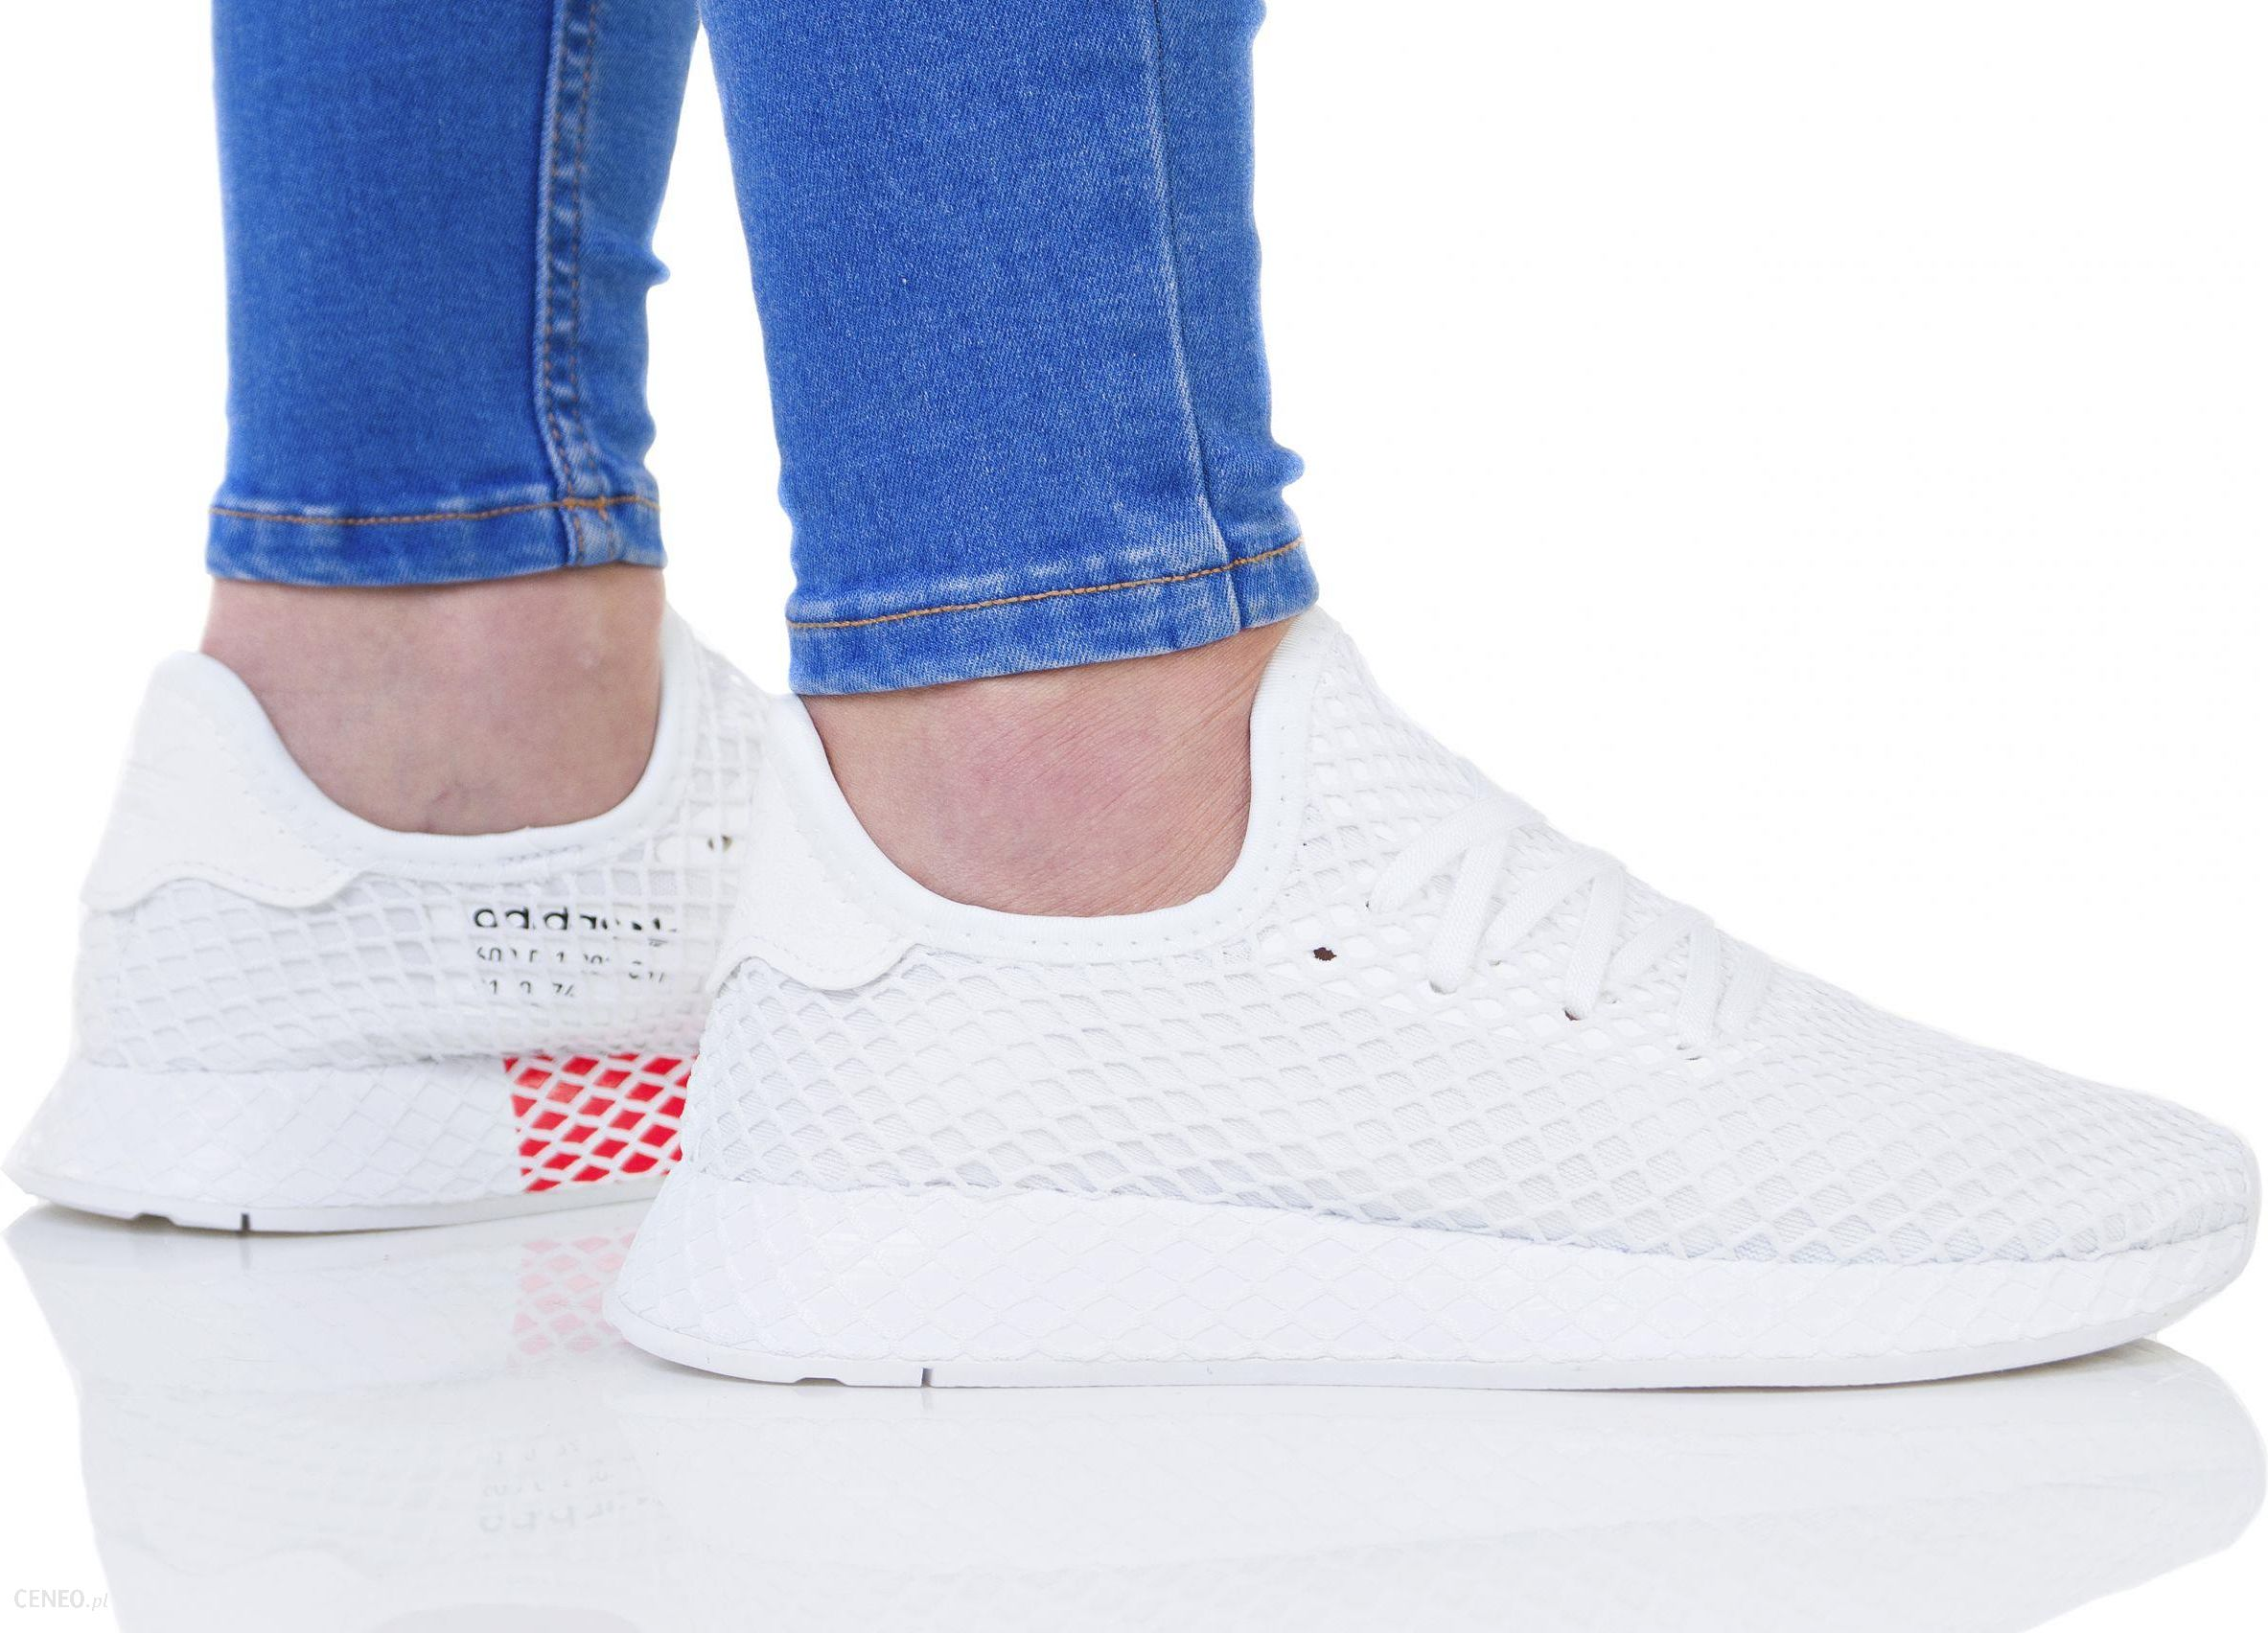 3e09d735c7df8 BUTY ADIDAS DEERUPT RUNNER J CQ2935 - Ceny i opinie - Ceneo.pl